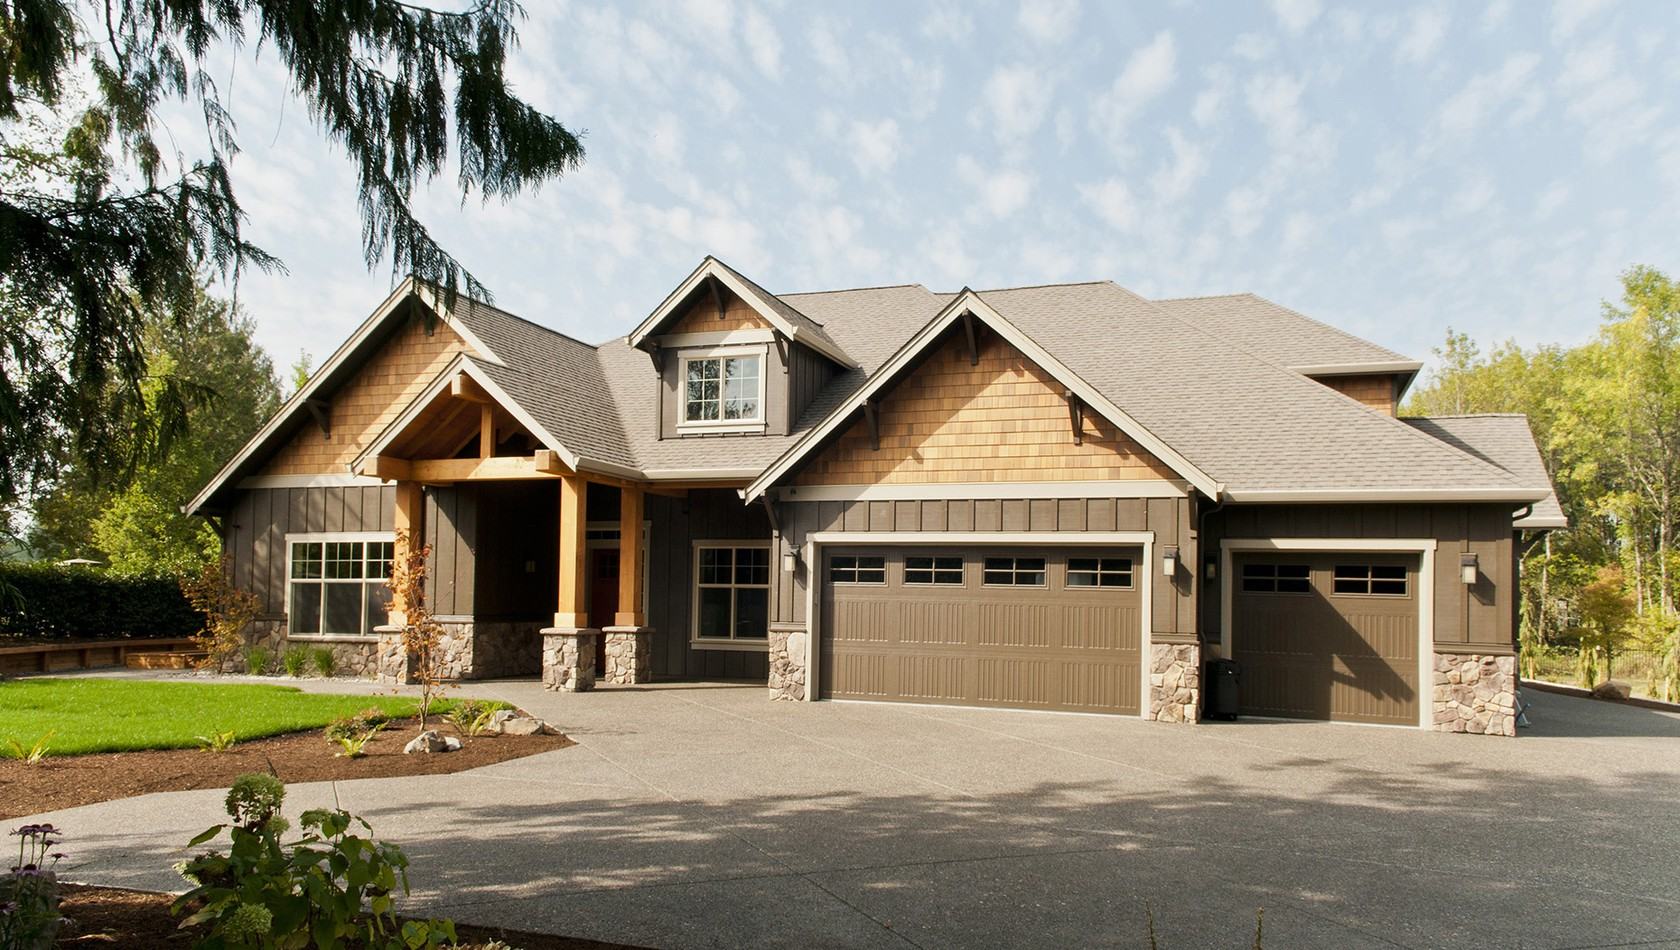 Main image for house plan B22157AA: The Ashby